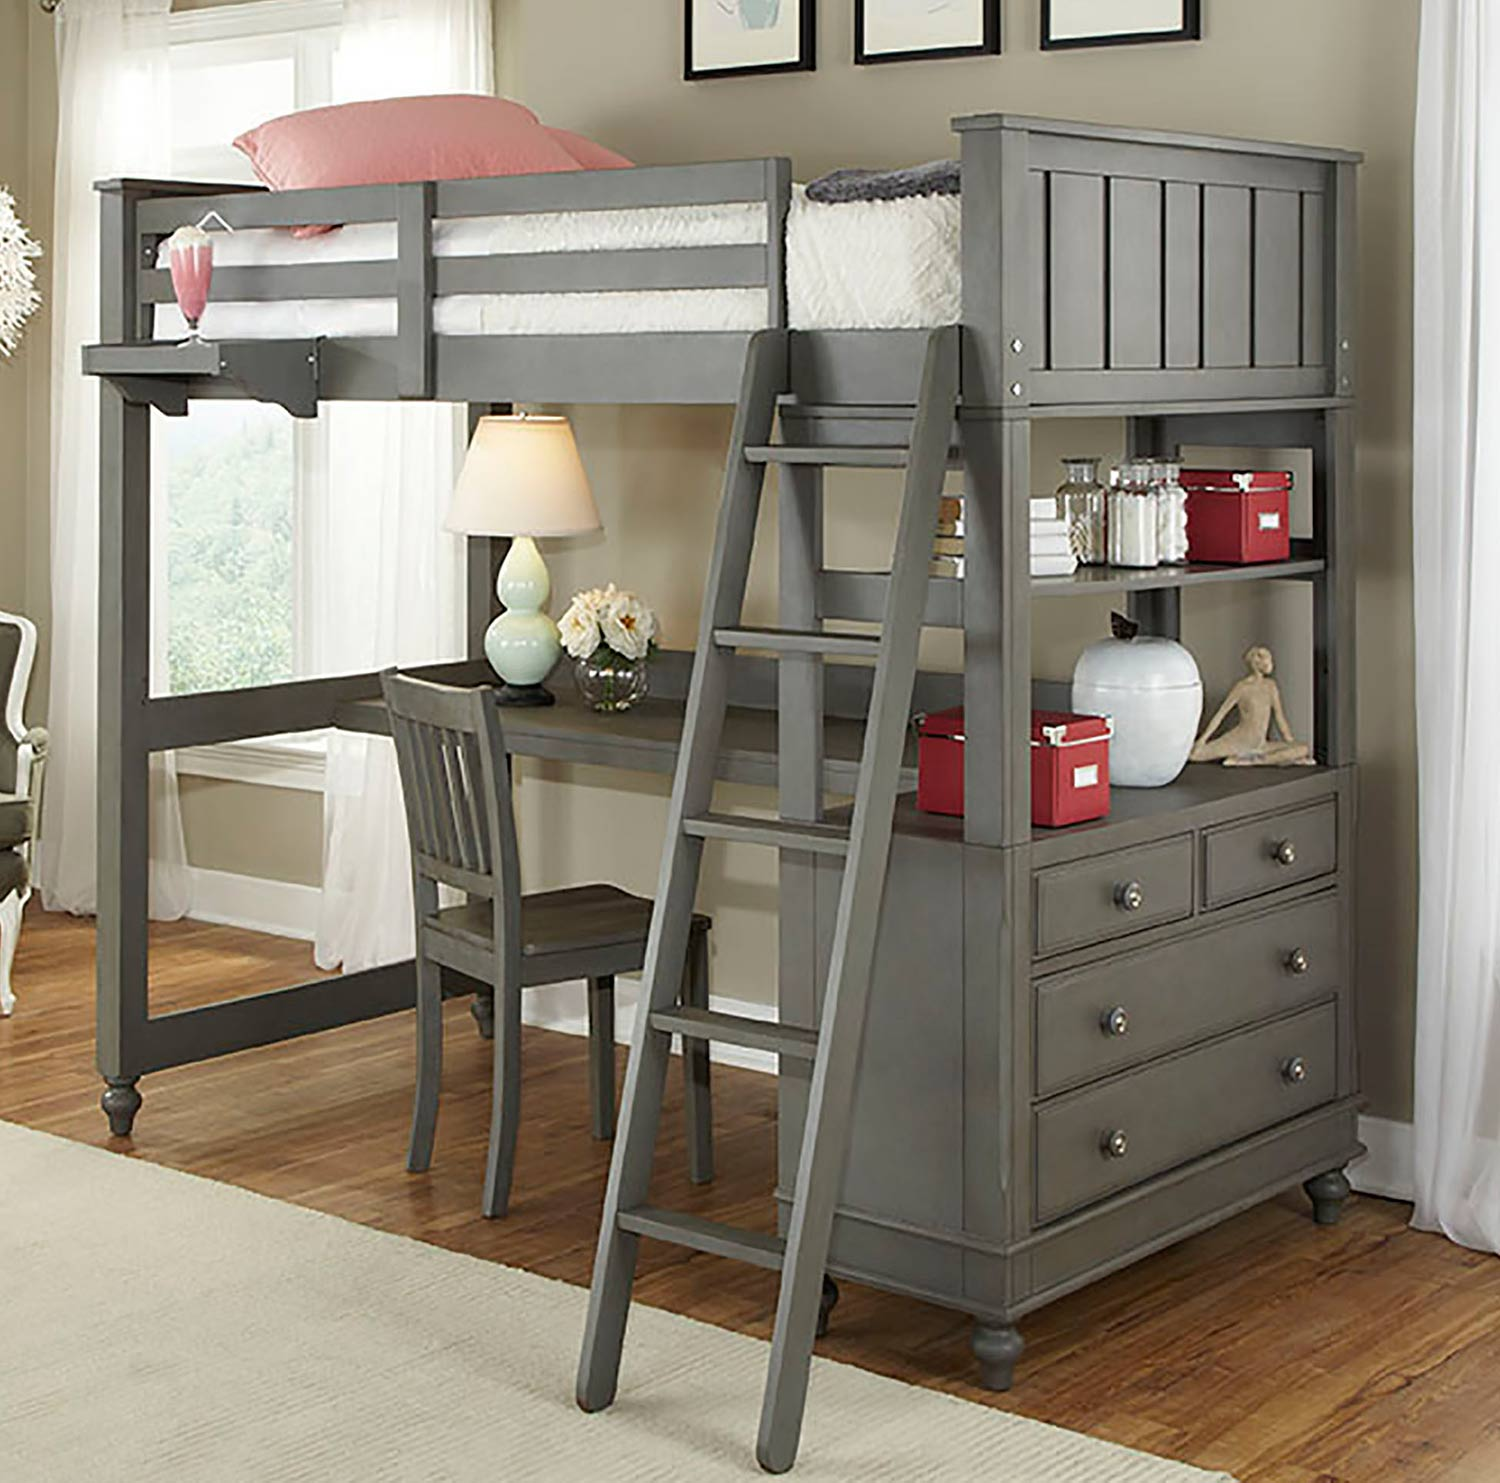 NE Kids Lake House Loft Bed with Desk - Stone